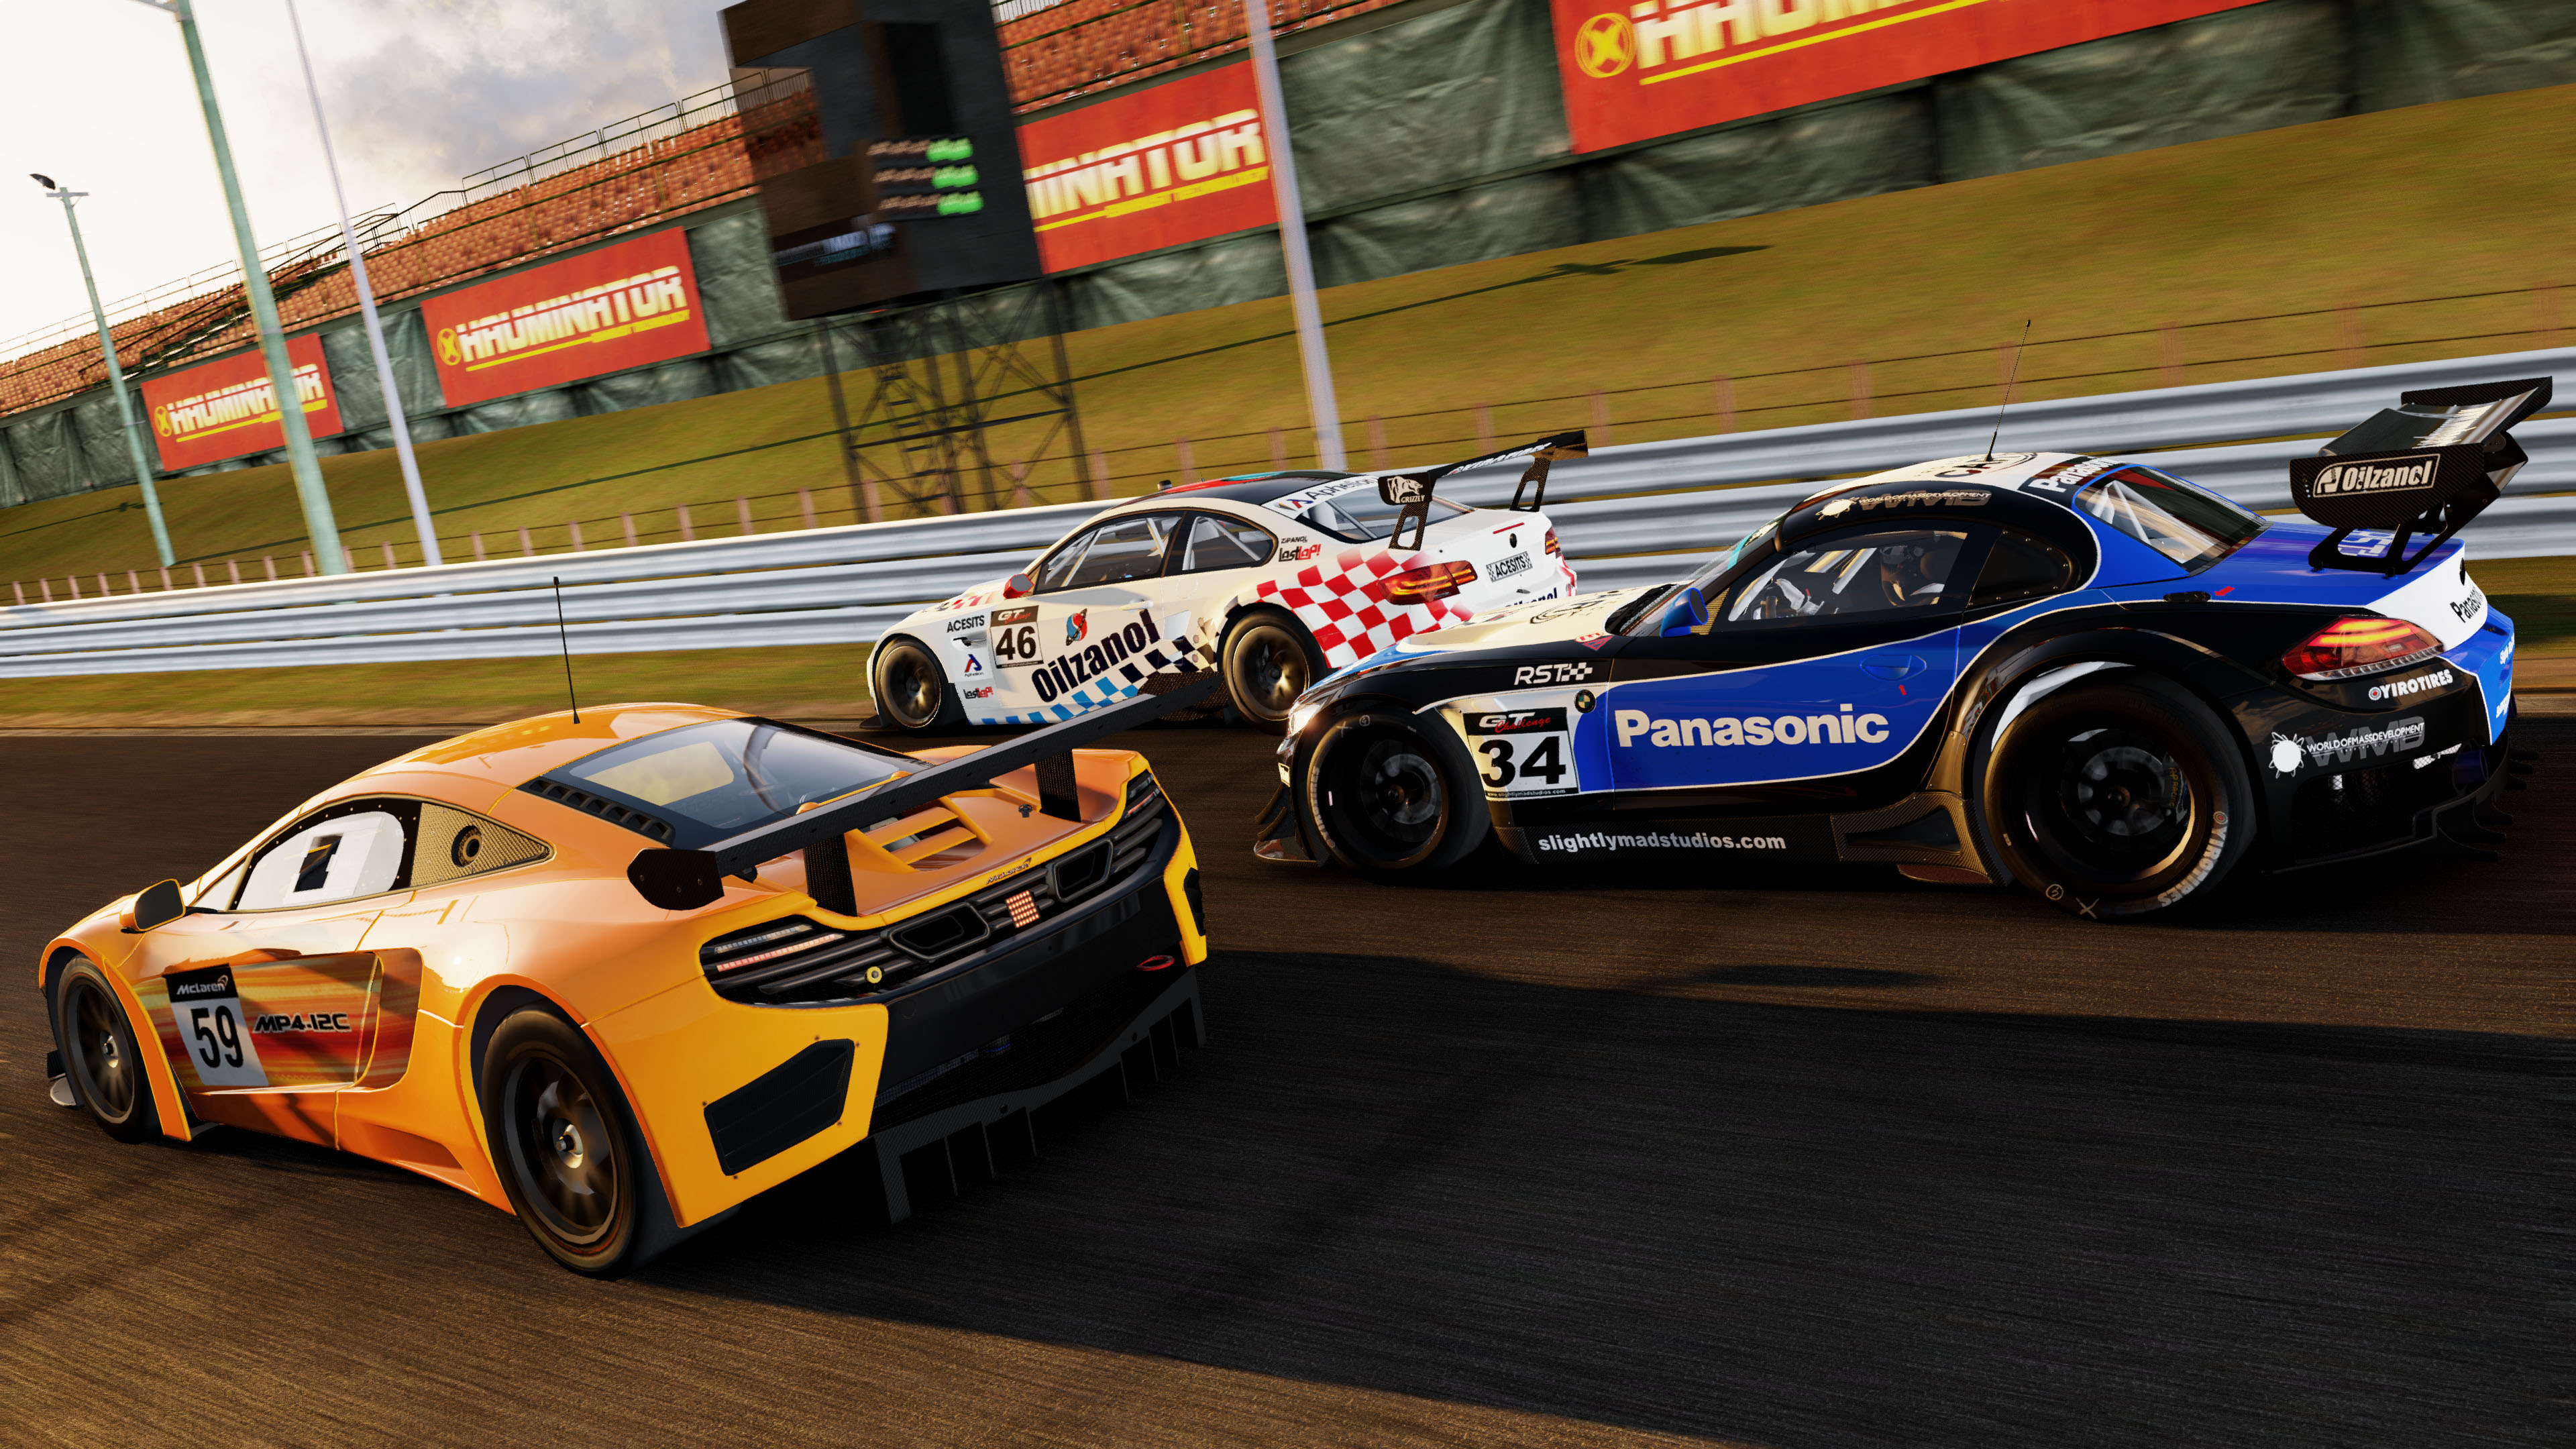 Project Cars 2 Deluxe Edition Wallpaper Project Cars Is 1080p On Ps4 900p On Xbox One And Up To